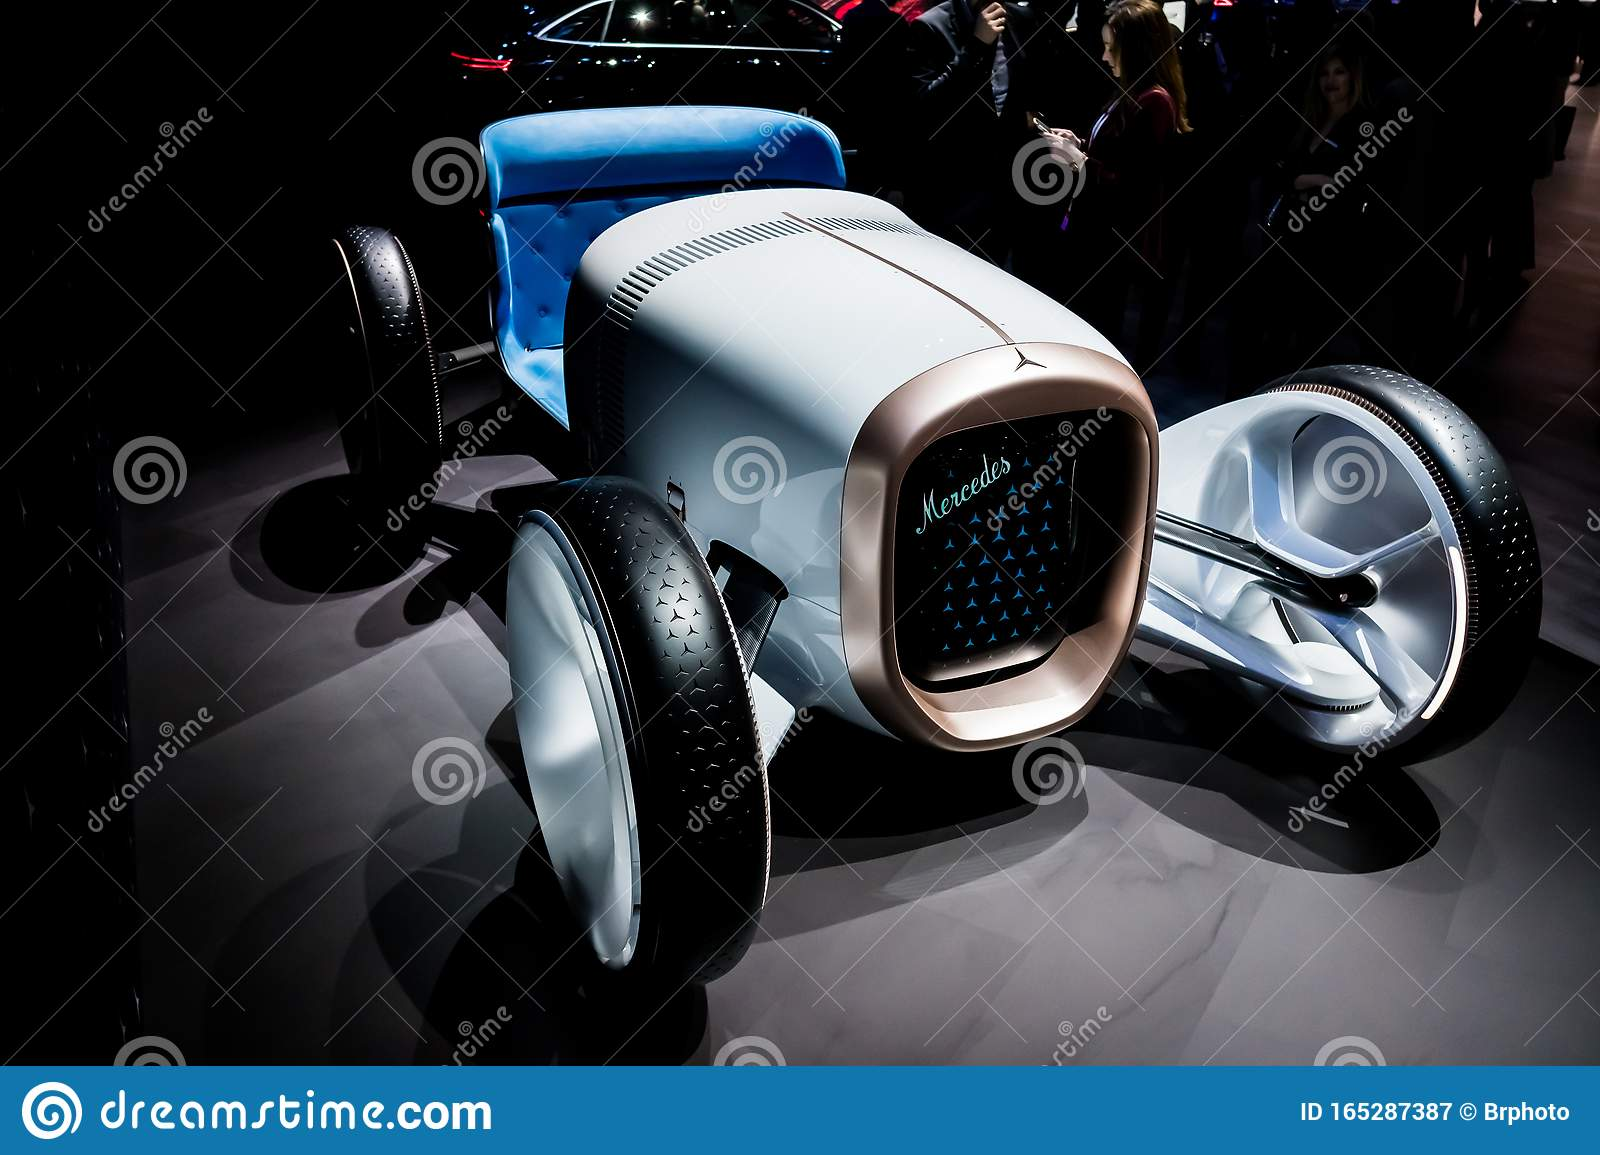 mercedes vision simplex 35 ps concept on display during los angeles auto show editorial photography image of automobile metal 165287387 dreamstime com